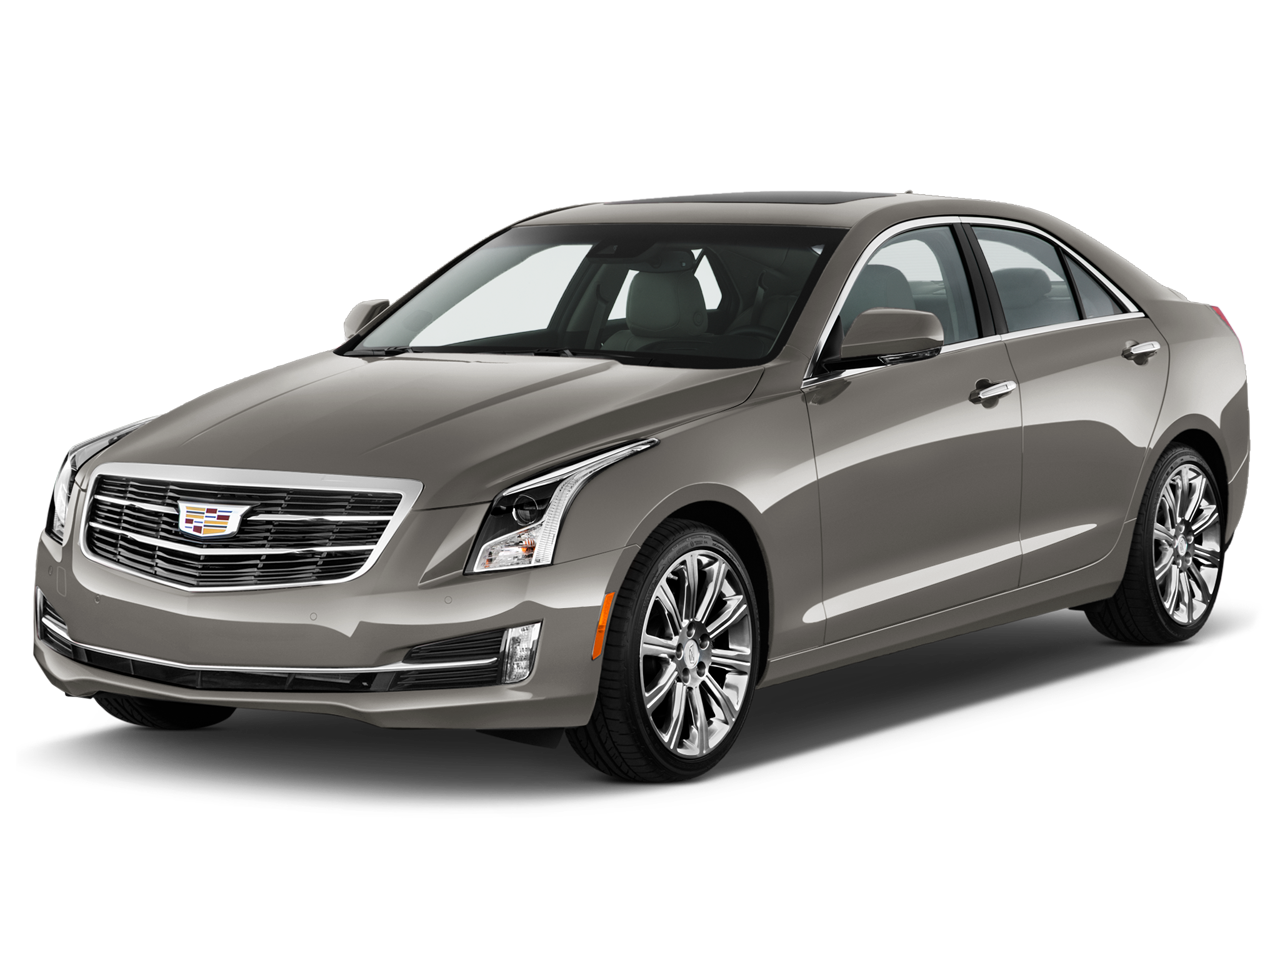 new 2017 cadillac ats 2 0l turbo near highland mi family deal. Black Bedroom Furniture Sets. Home Design Ideas